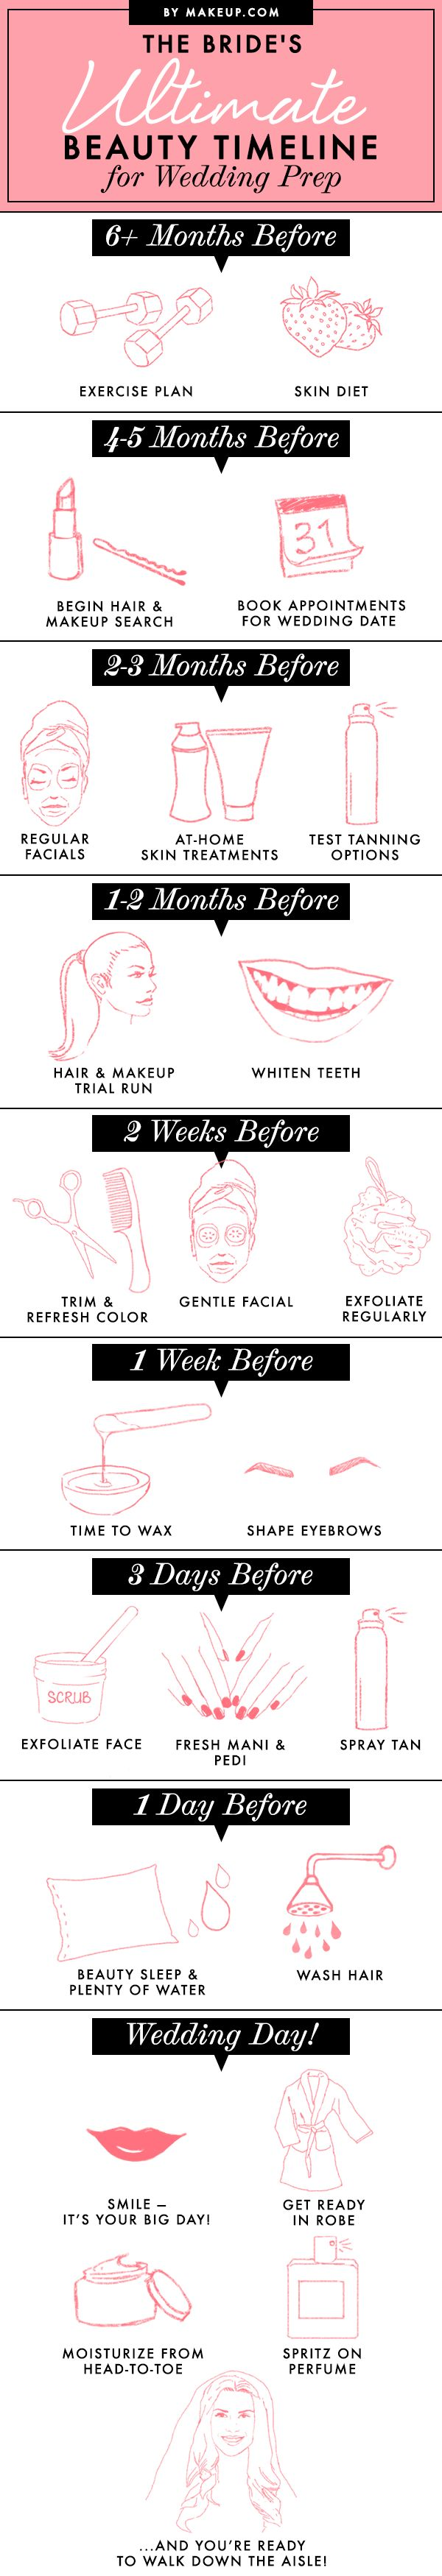 Relieve Stress - 19 Essential Beauty Tips for Brides Before The Wedding - EverAfterGuide